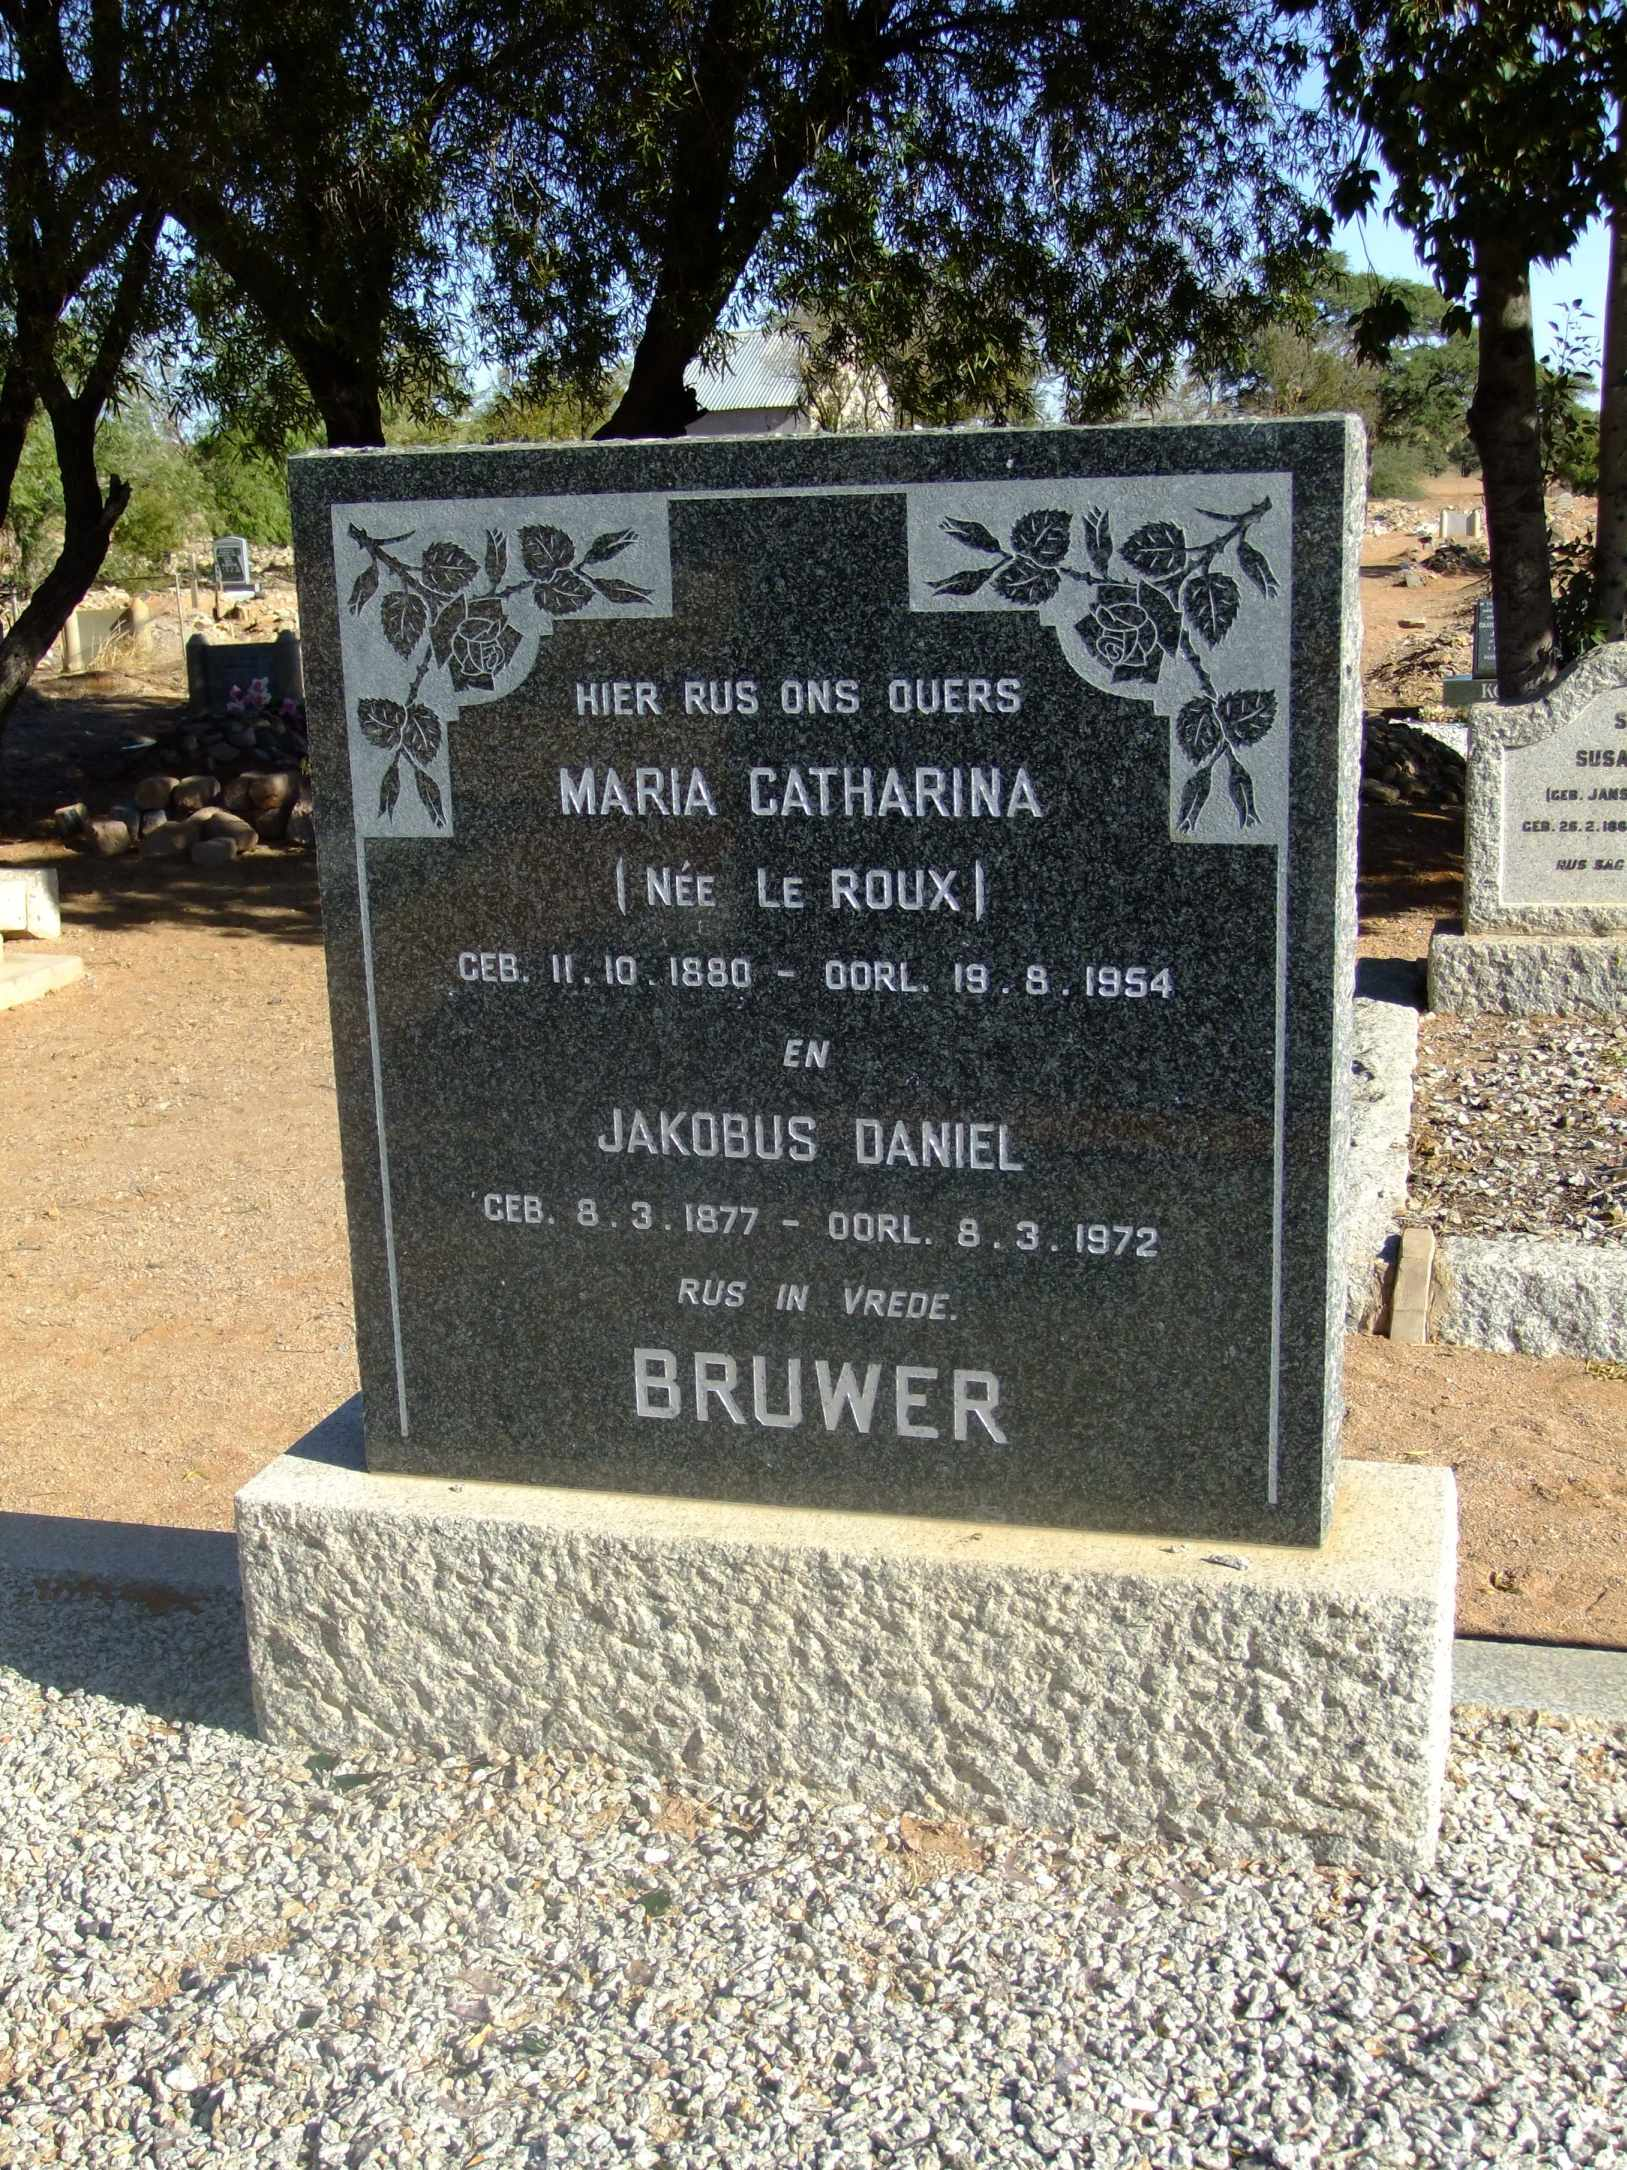 Bruwer, Maria Catharina nee Le Roux and Jakobus